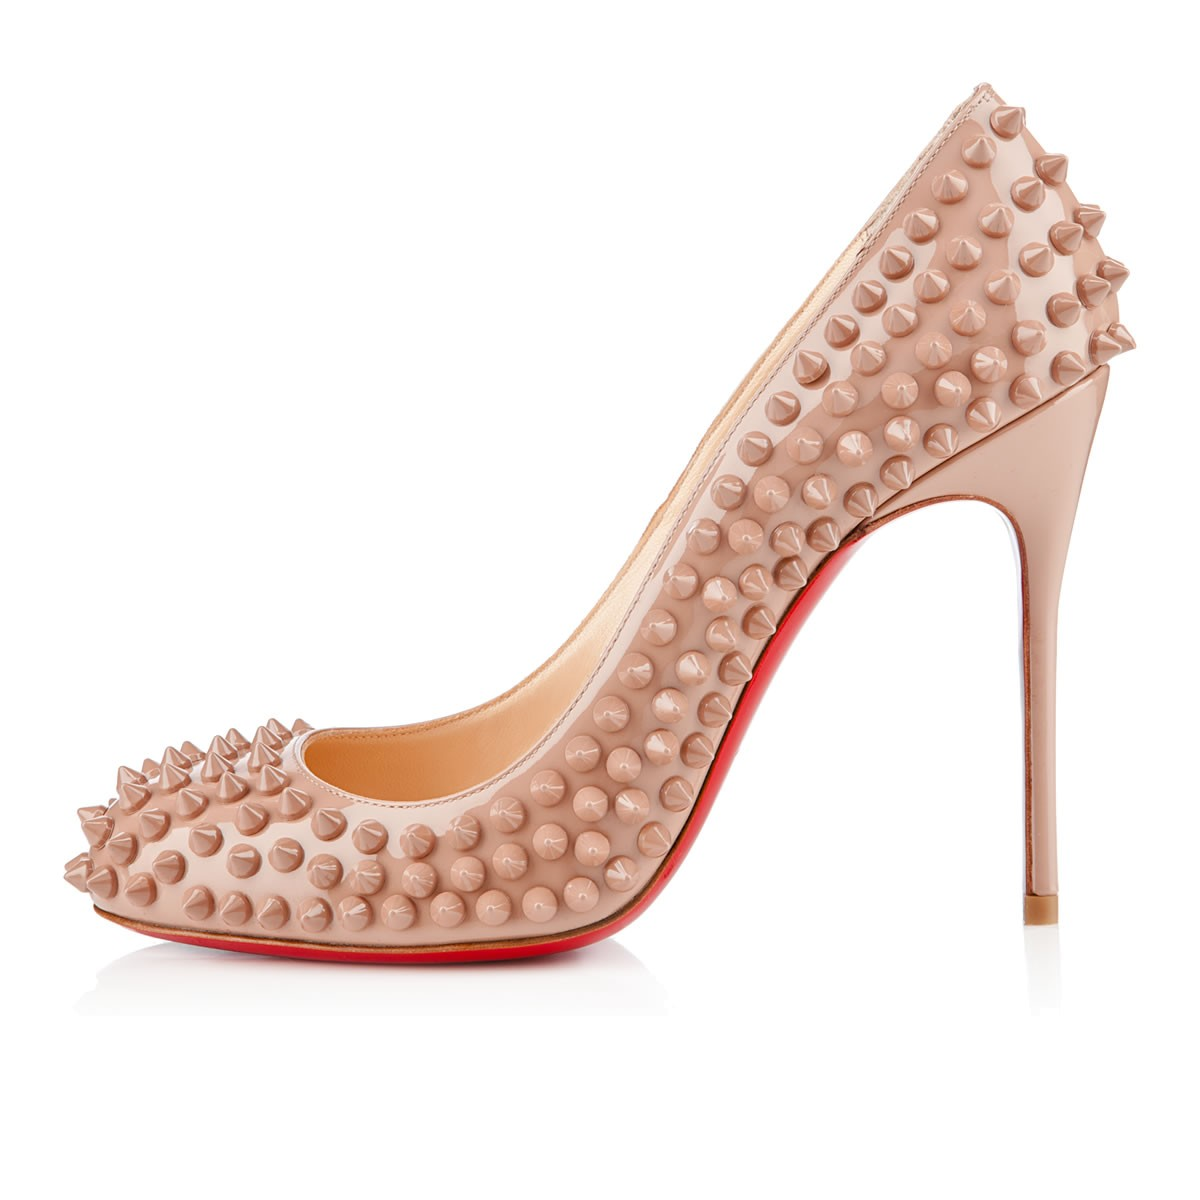 Fifi spikes patent 100 mm, patent leather, nude/nude, women shoes